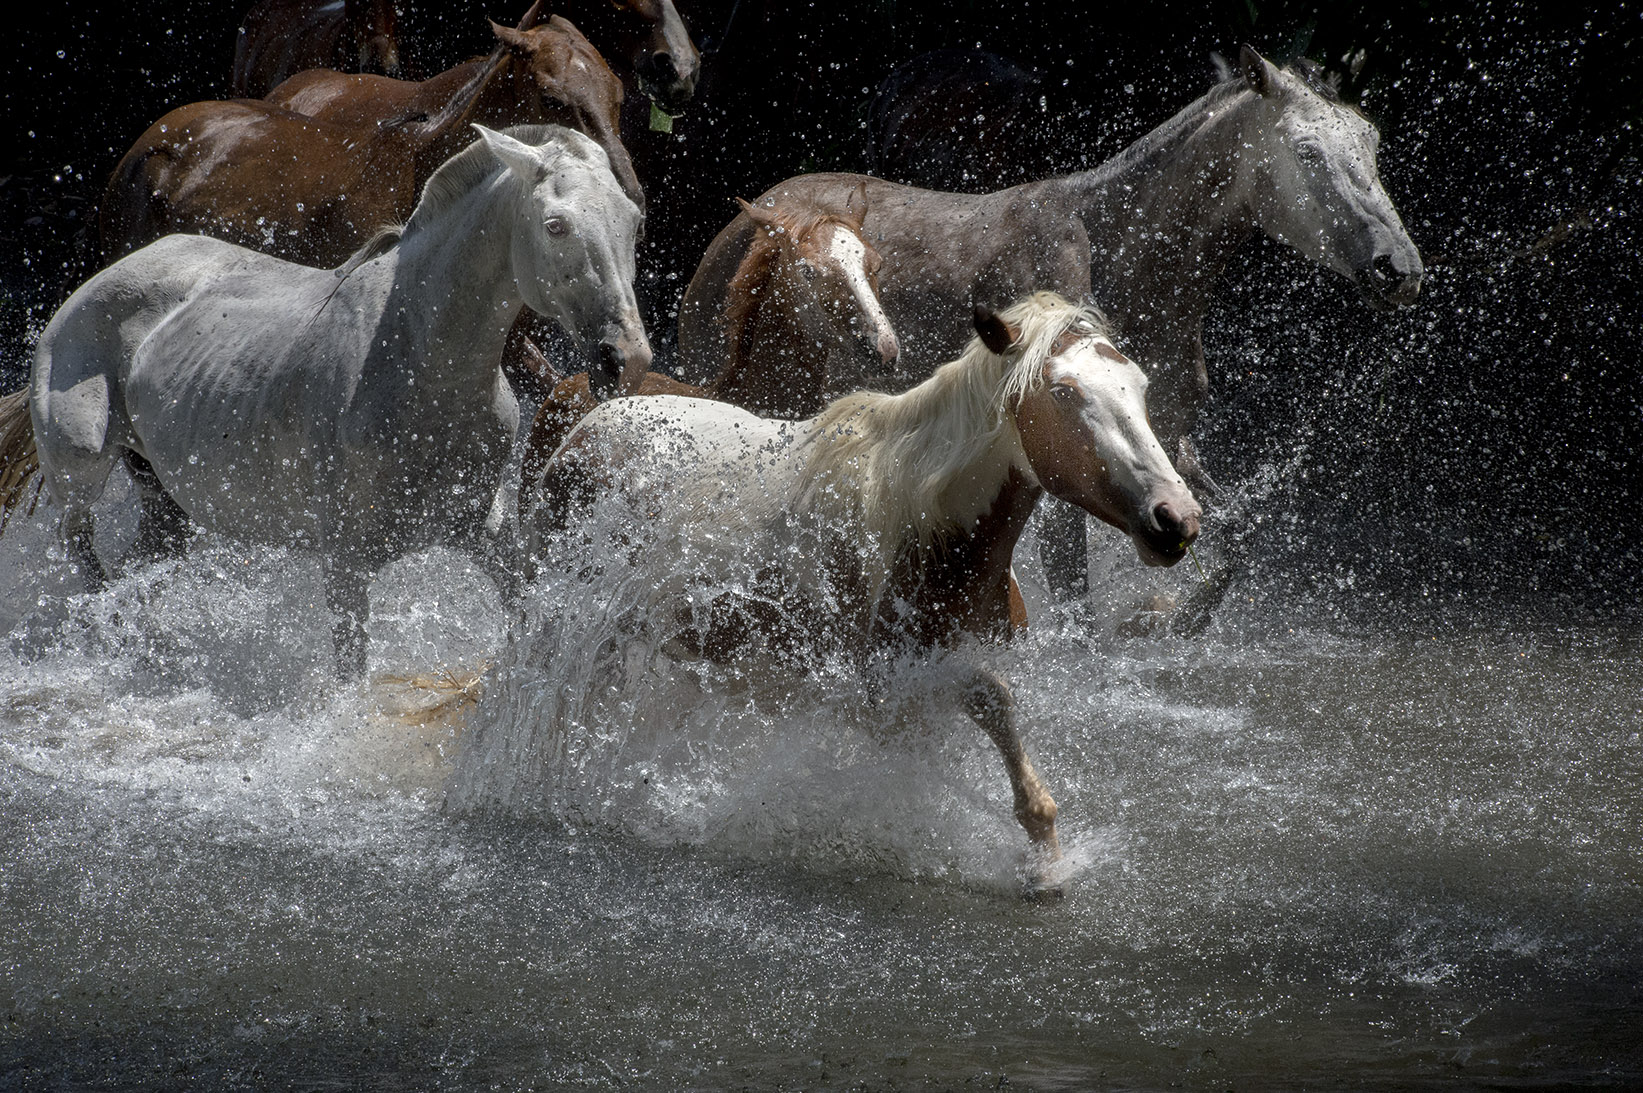 20140224_Horses and Water_0109.jpg